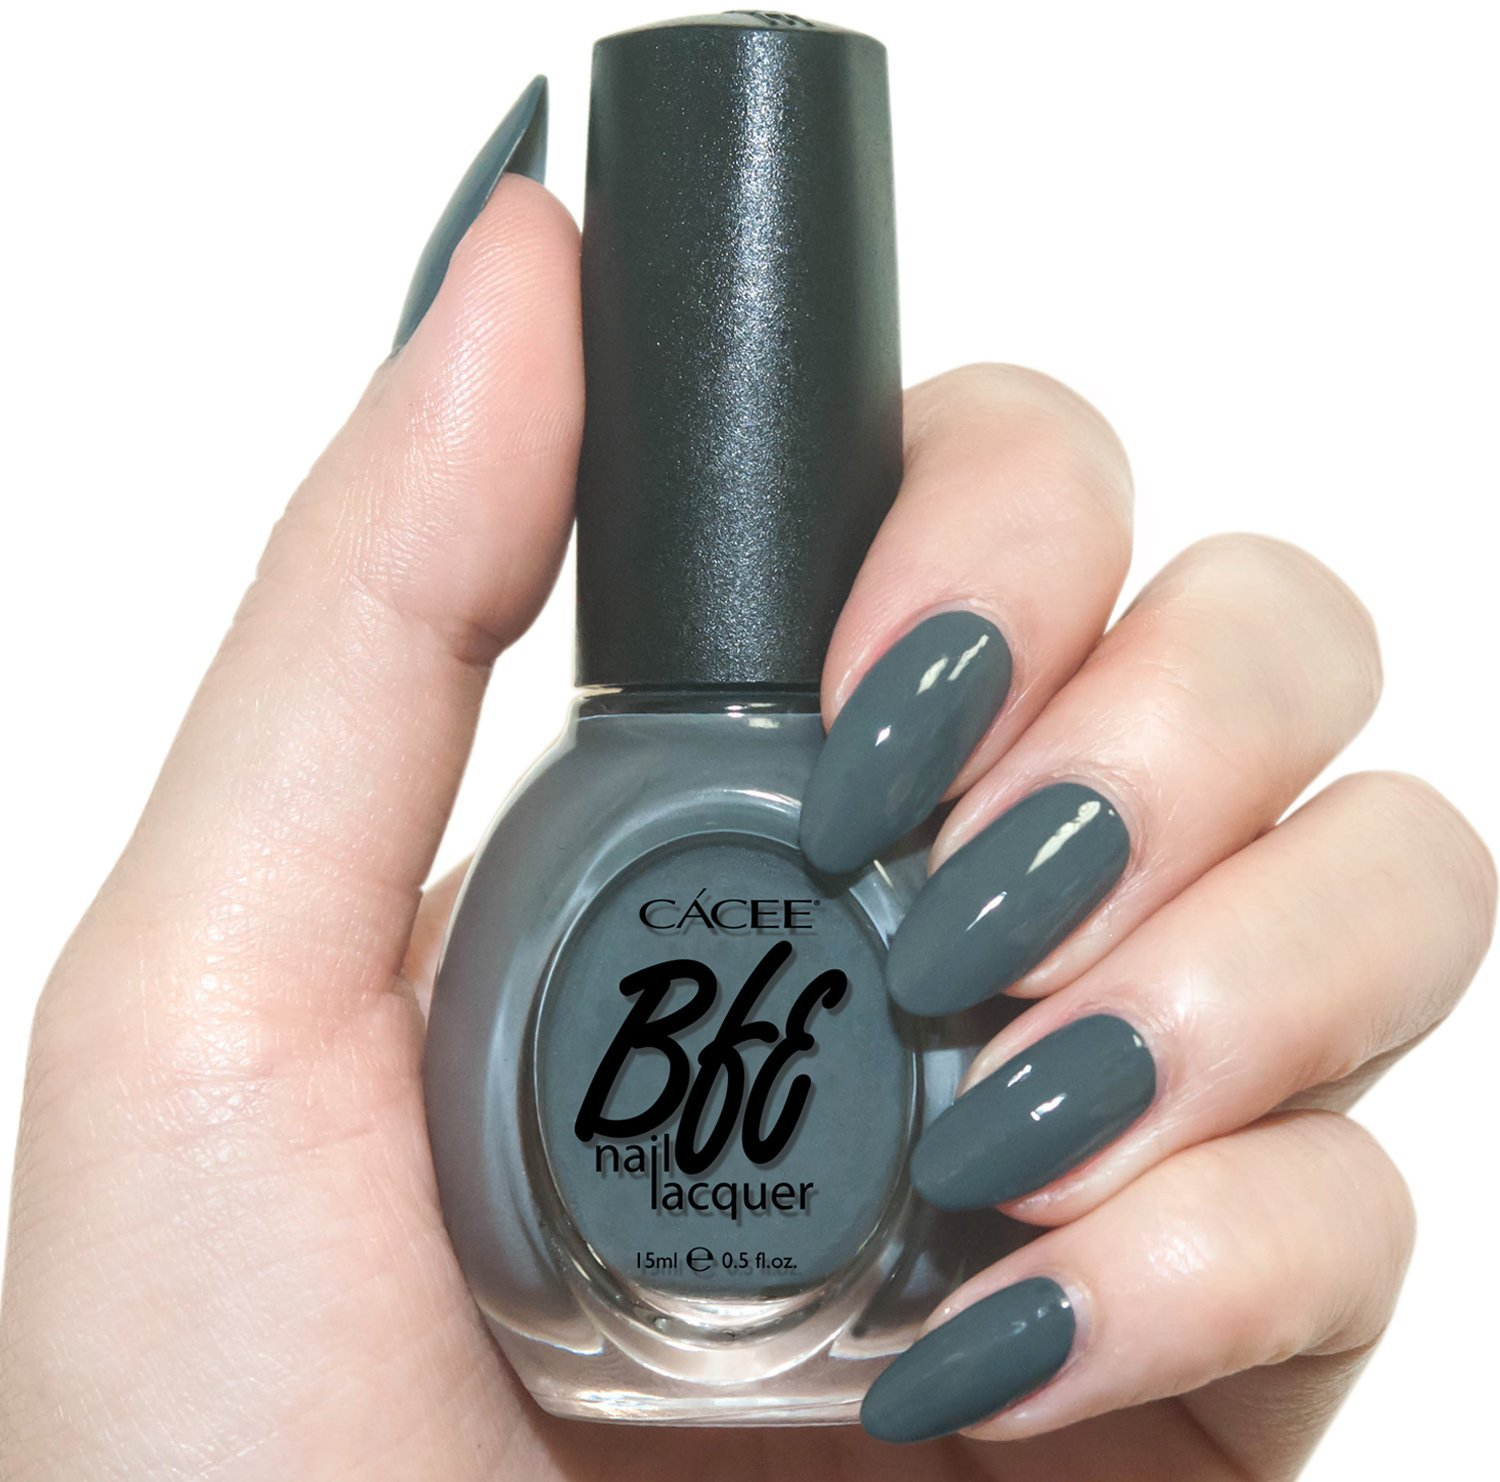 Cement Gray Nail Polish, Bella, Professional Color Lacquer by Cacee 323 0.5oz